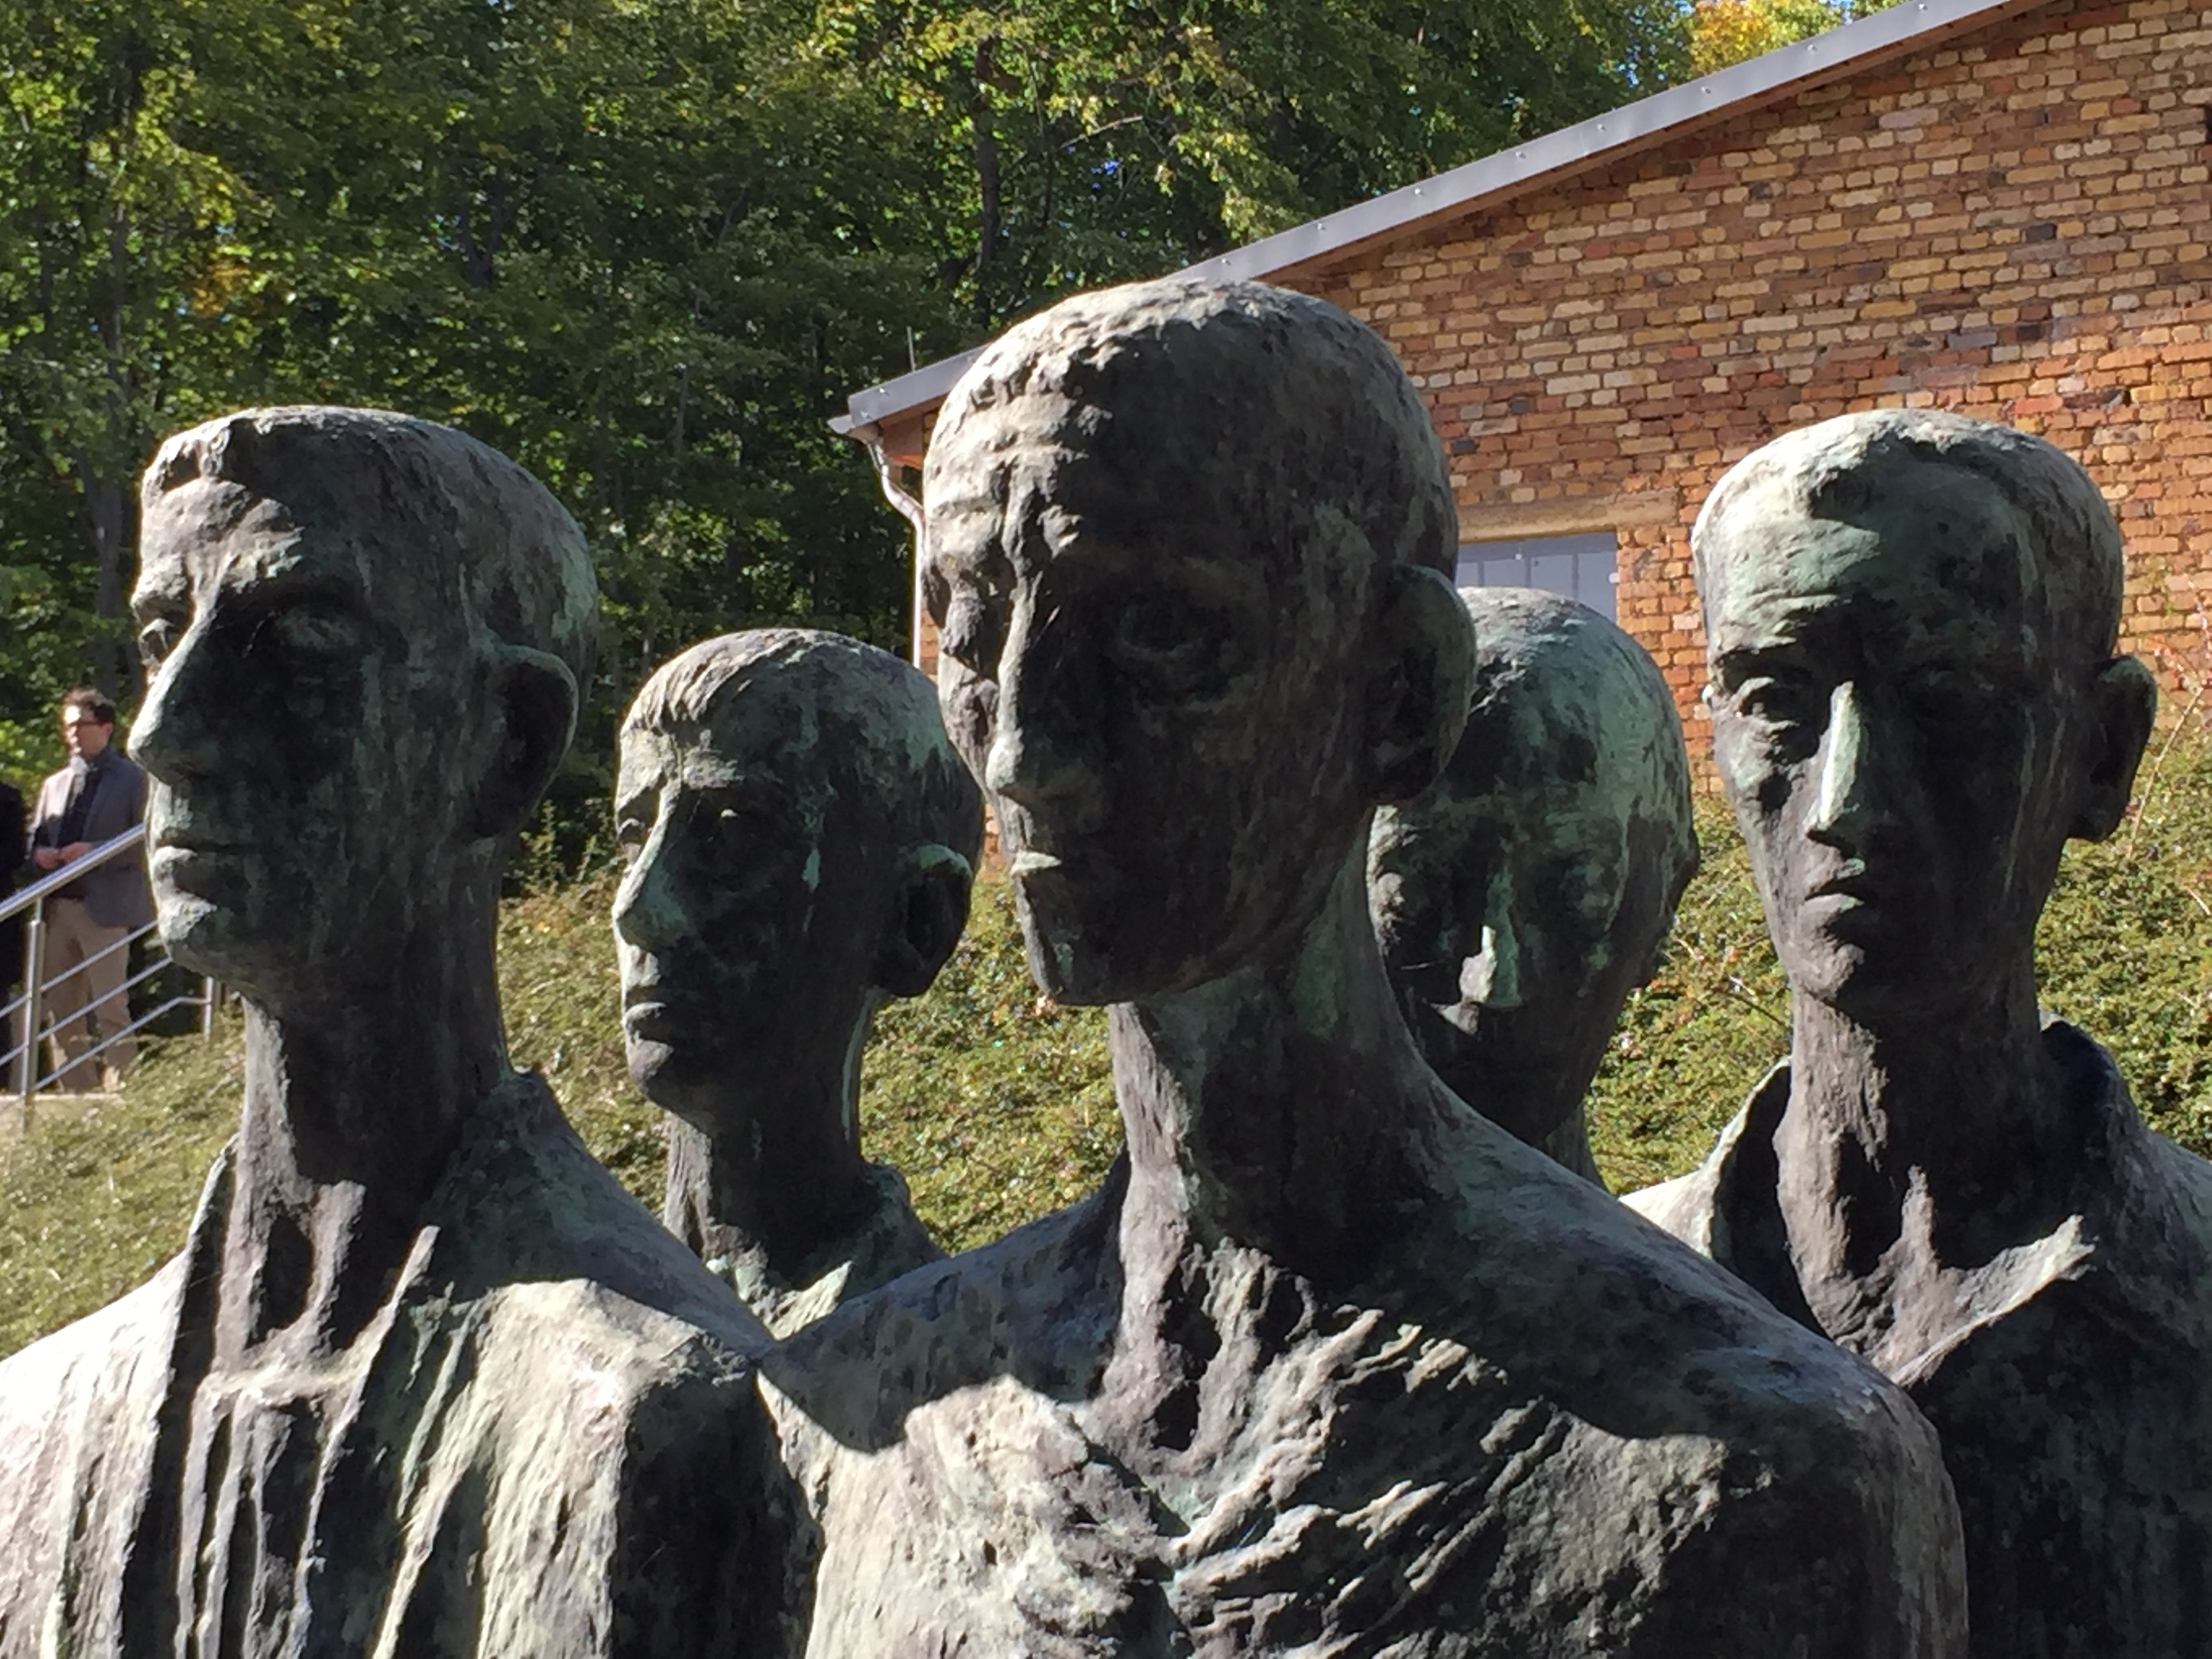 Memorial to the victims of the Holocaust outside the crematorium at Mittelbauw-Dora concentration camp